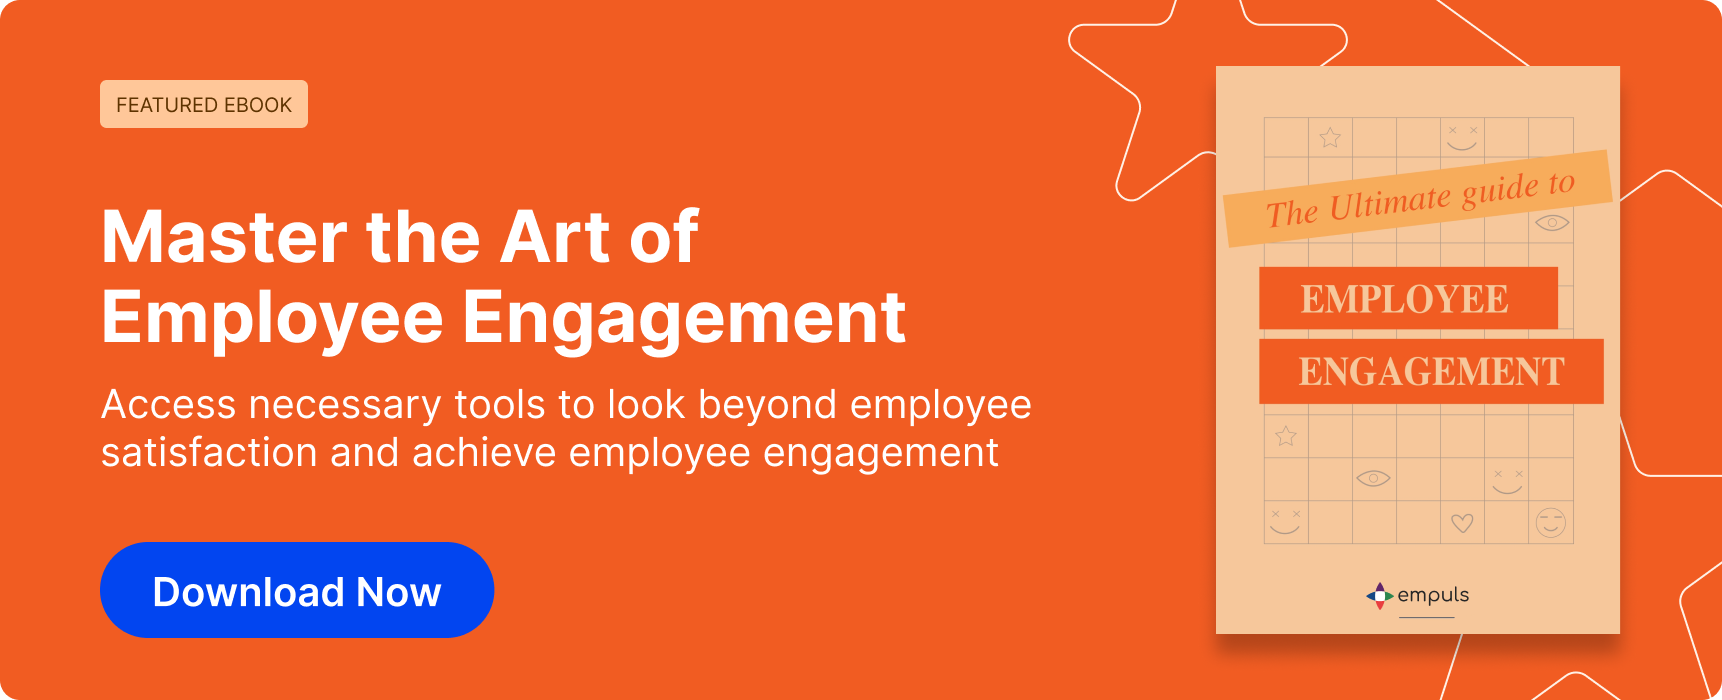 The Ultimate Guide to Employee Engagement for HRs and People Leaders